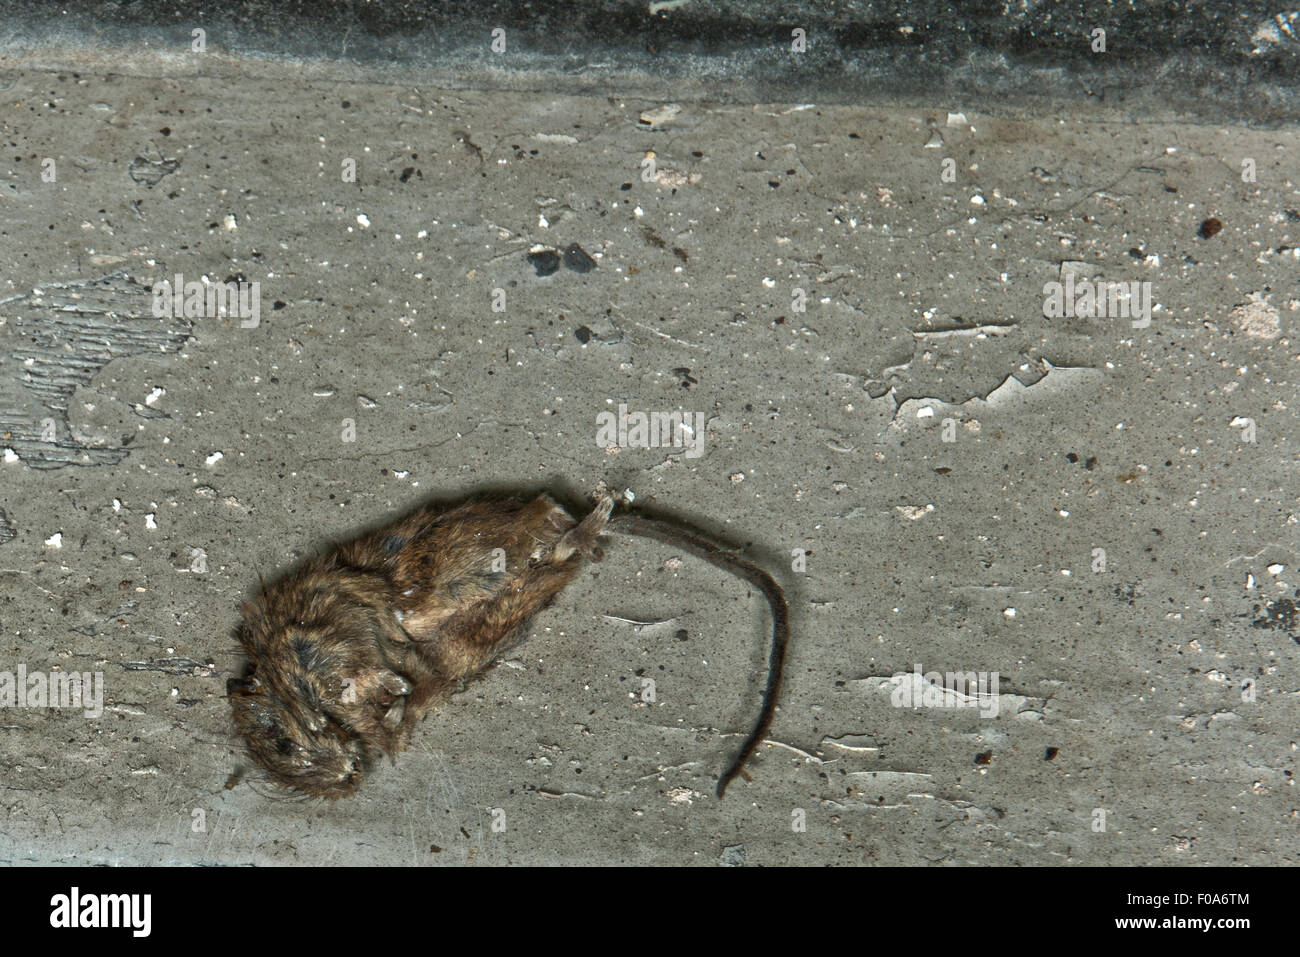 A Dead Mouse In The Closed Main Pool In Moseley Road Swimming Baths Stock Photo Royalty Free